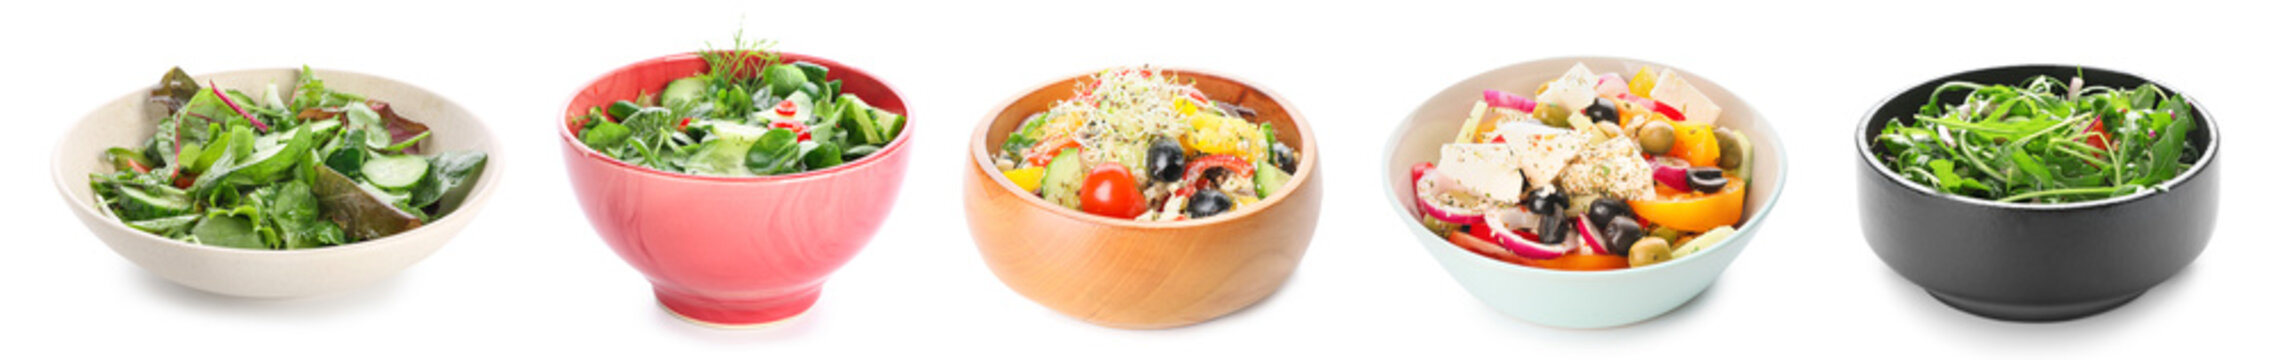 Plate with fresh vegetable salad on white background